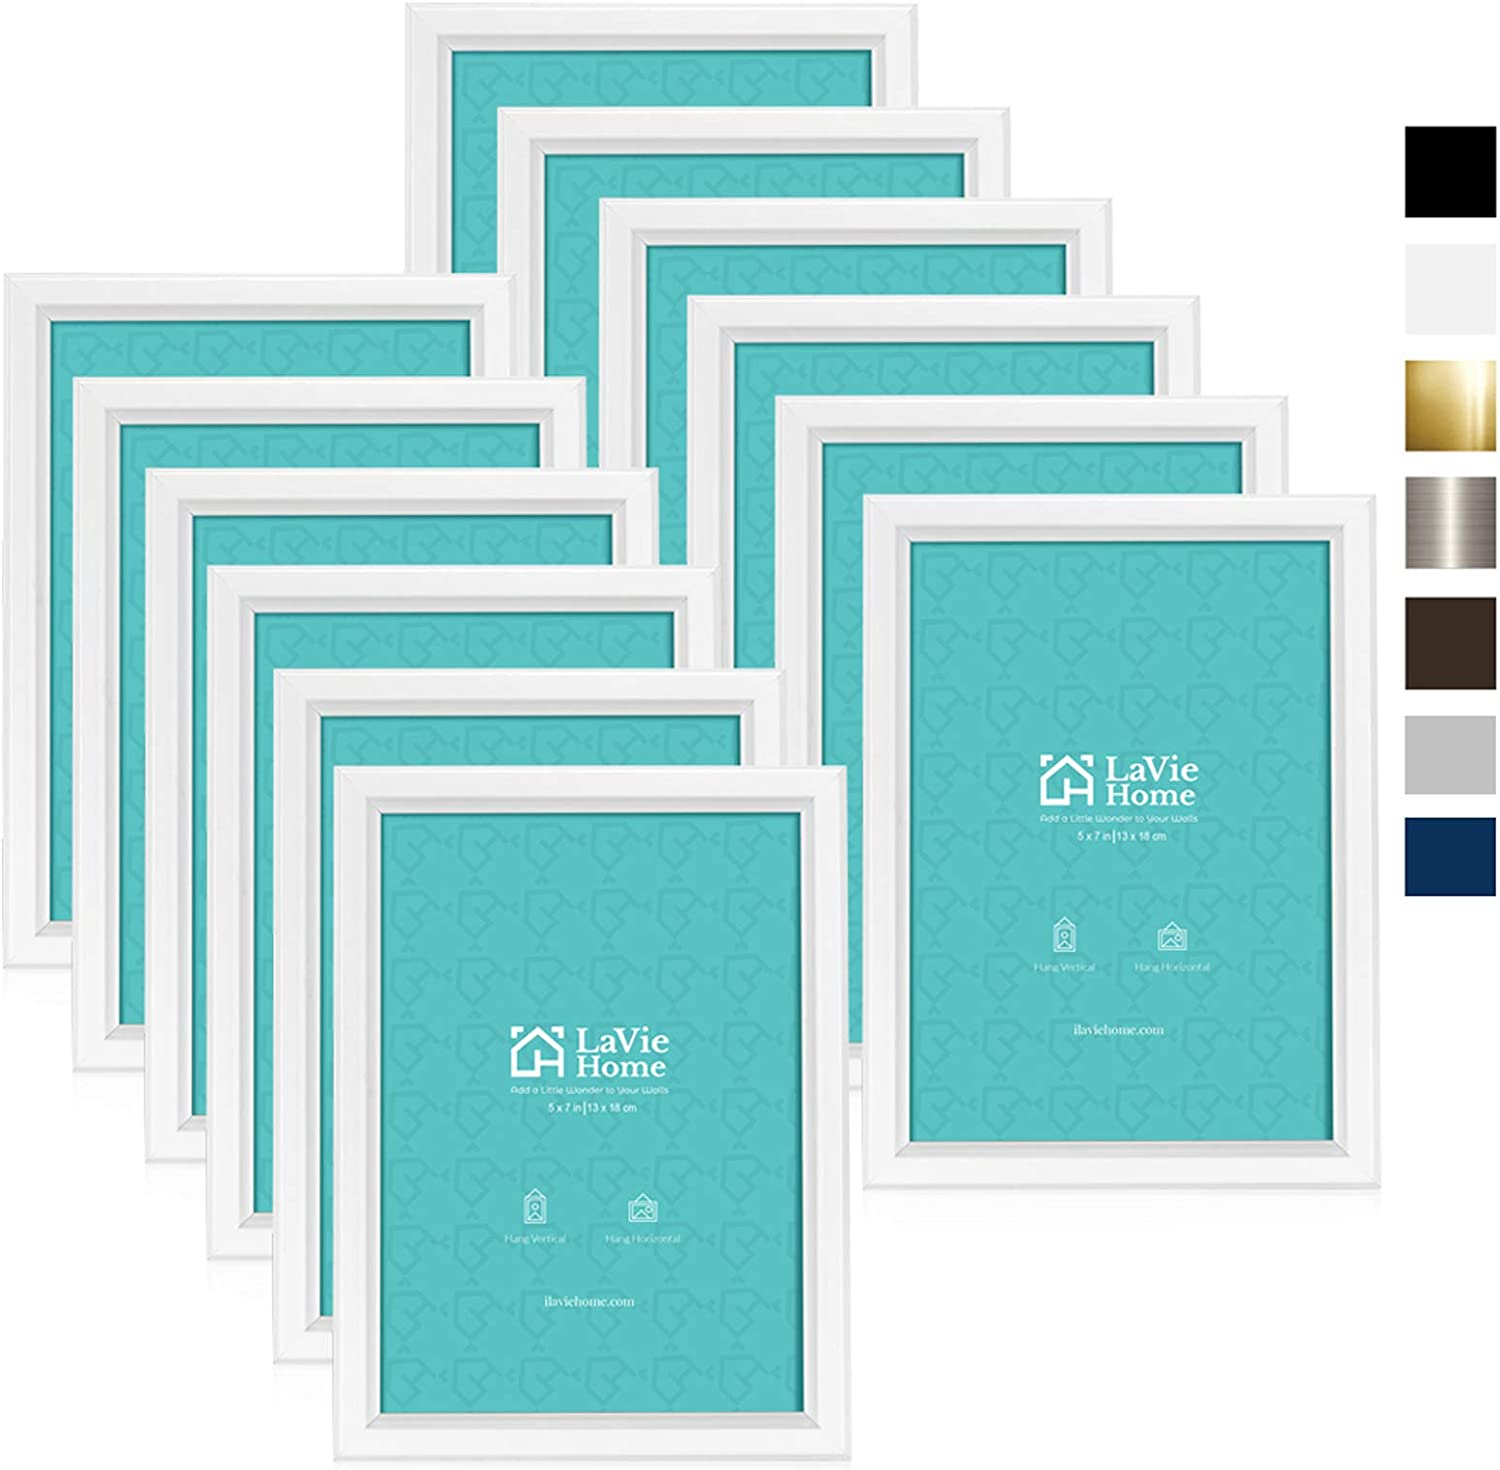 LaVie Home 5x7 Picture Frames (12 Pack, White) Simple Designed Photo Frame with High Definition Glass for Wall Mount & Table Top Display, Set of 12 Classic Collection